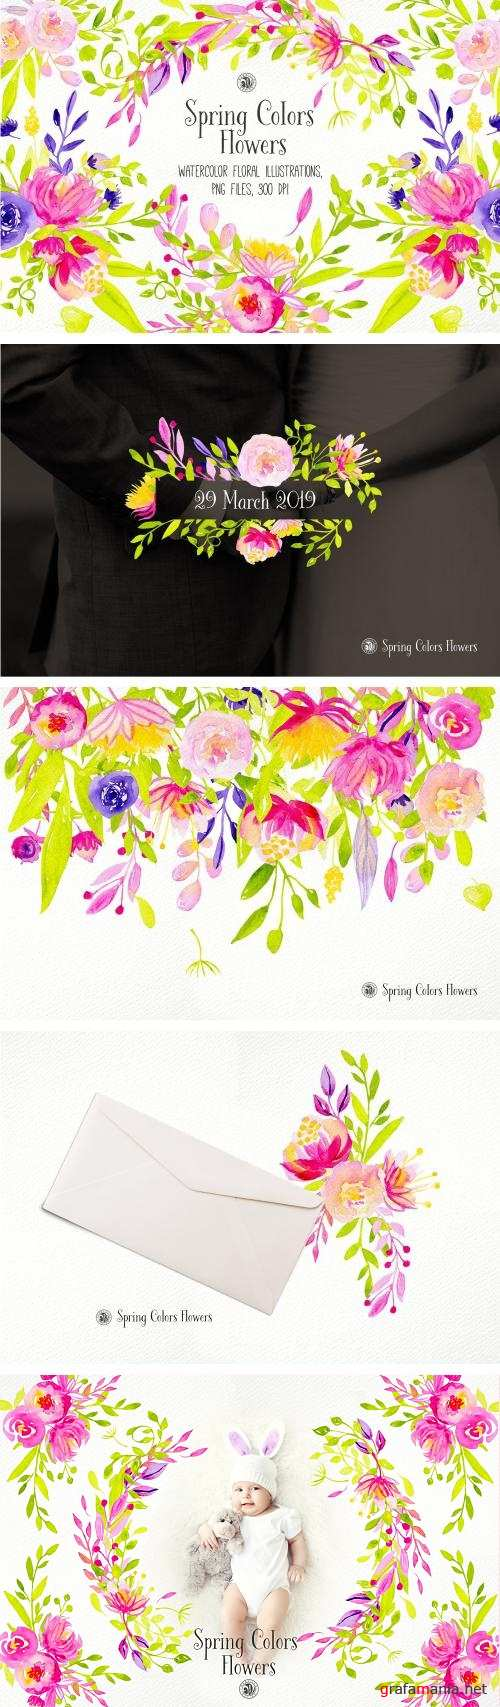 Spring Colors Flowers - 3397804